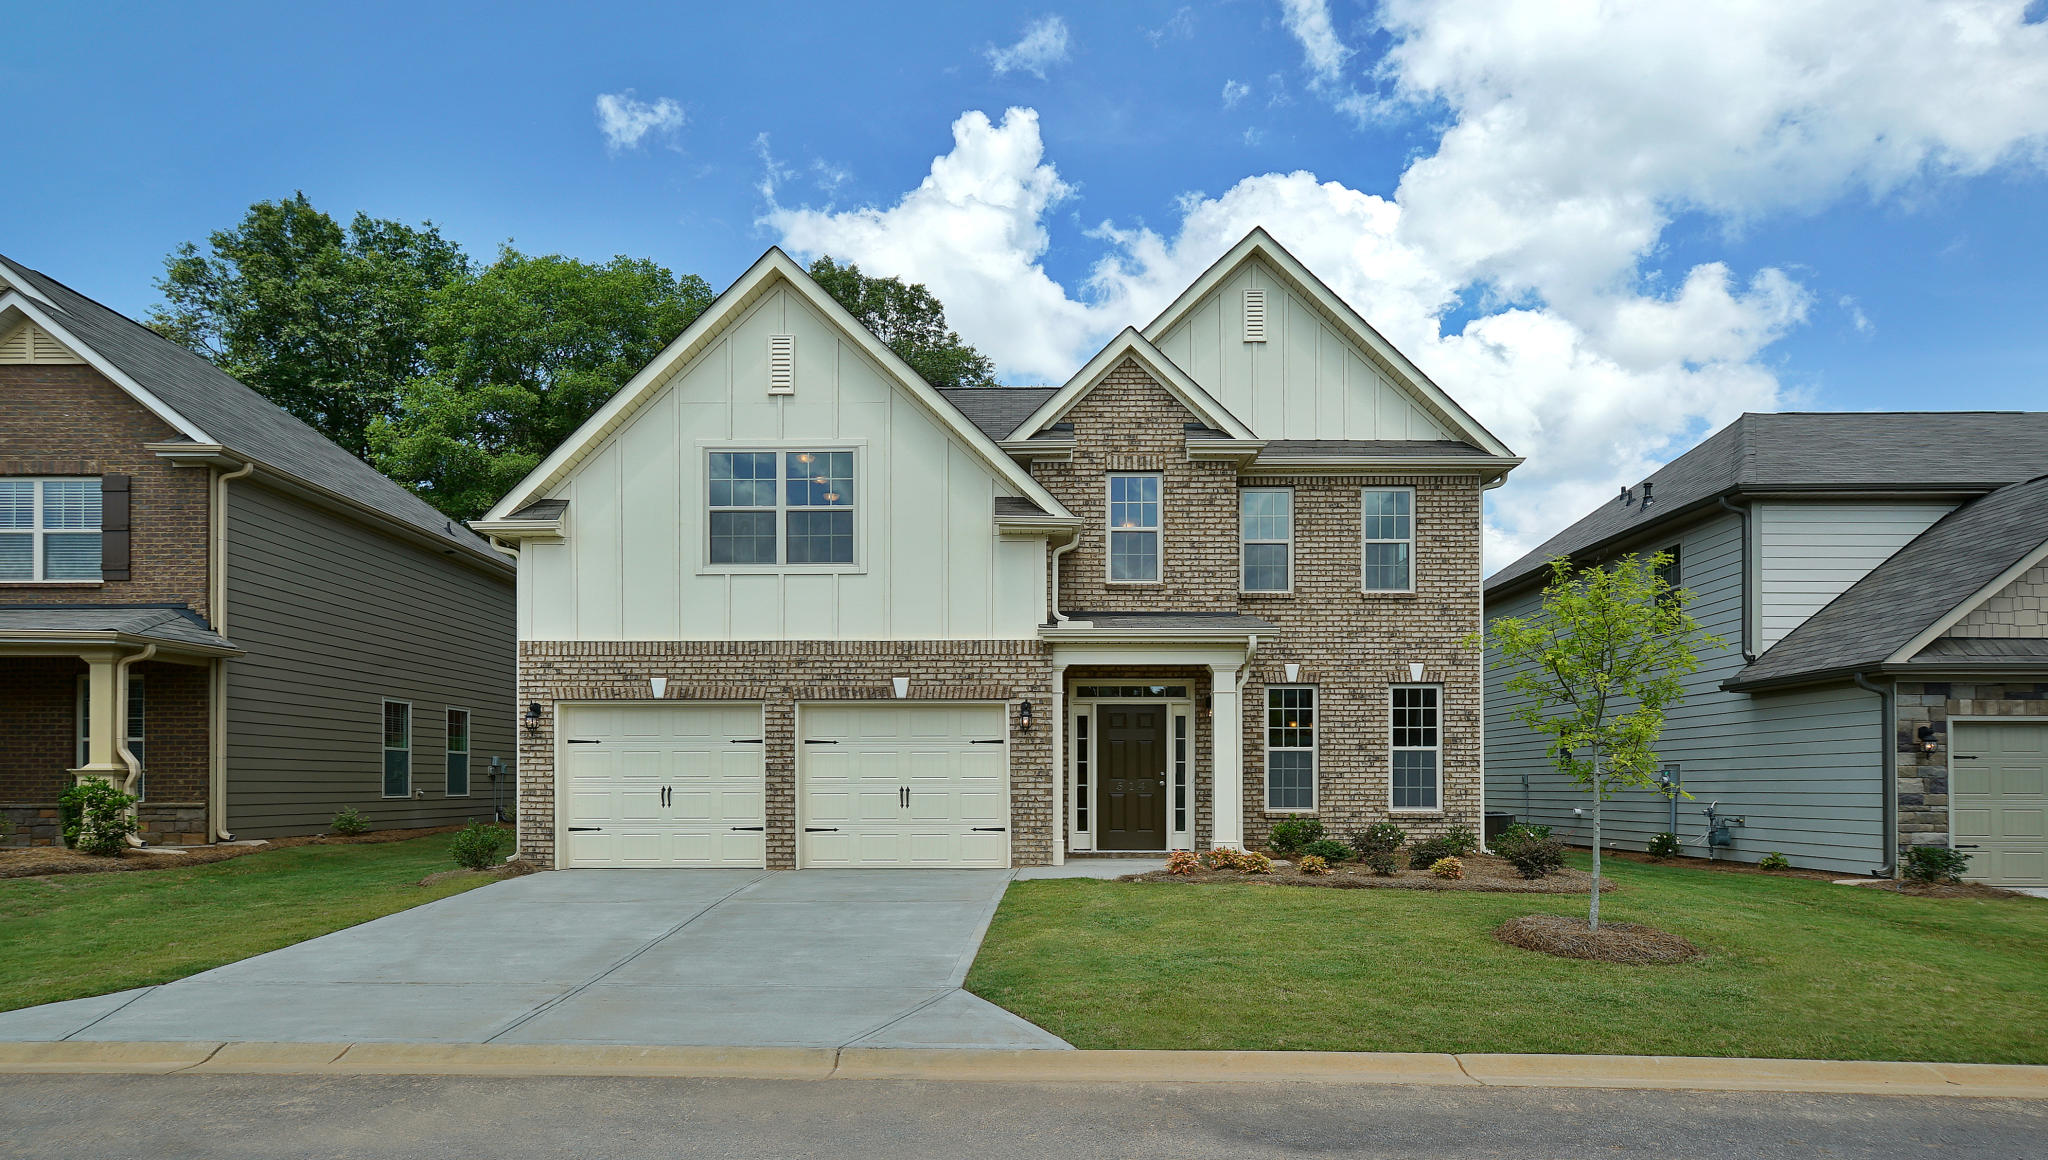 302 Wildflower Rd, Easley, SC